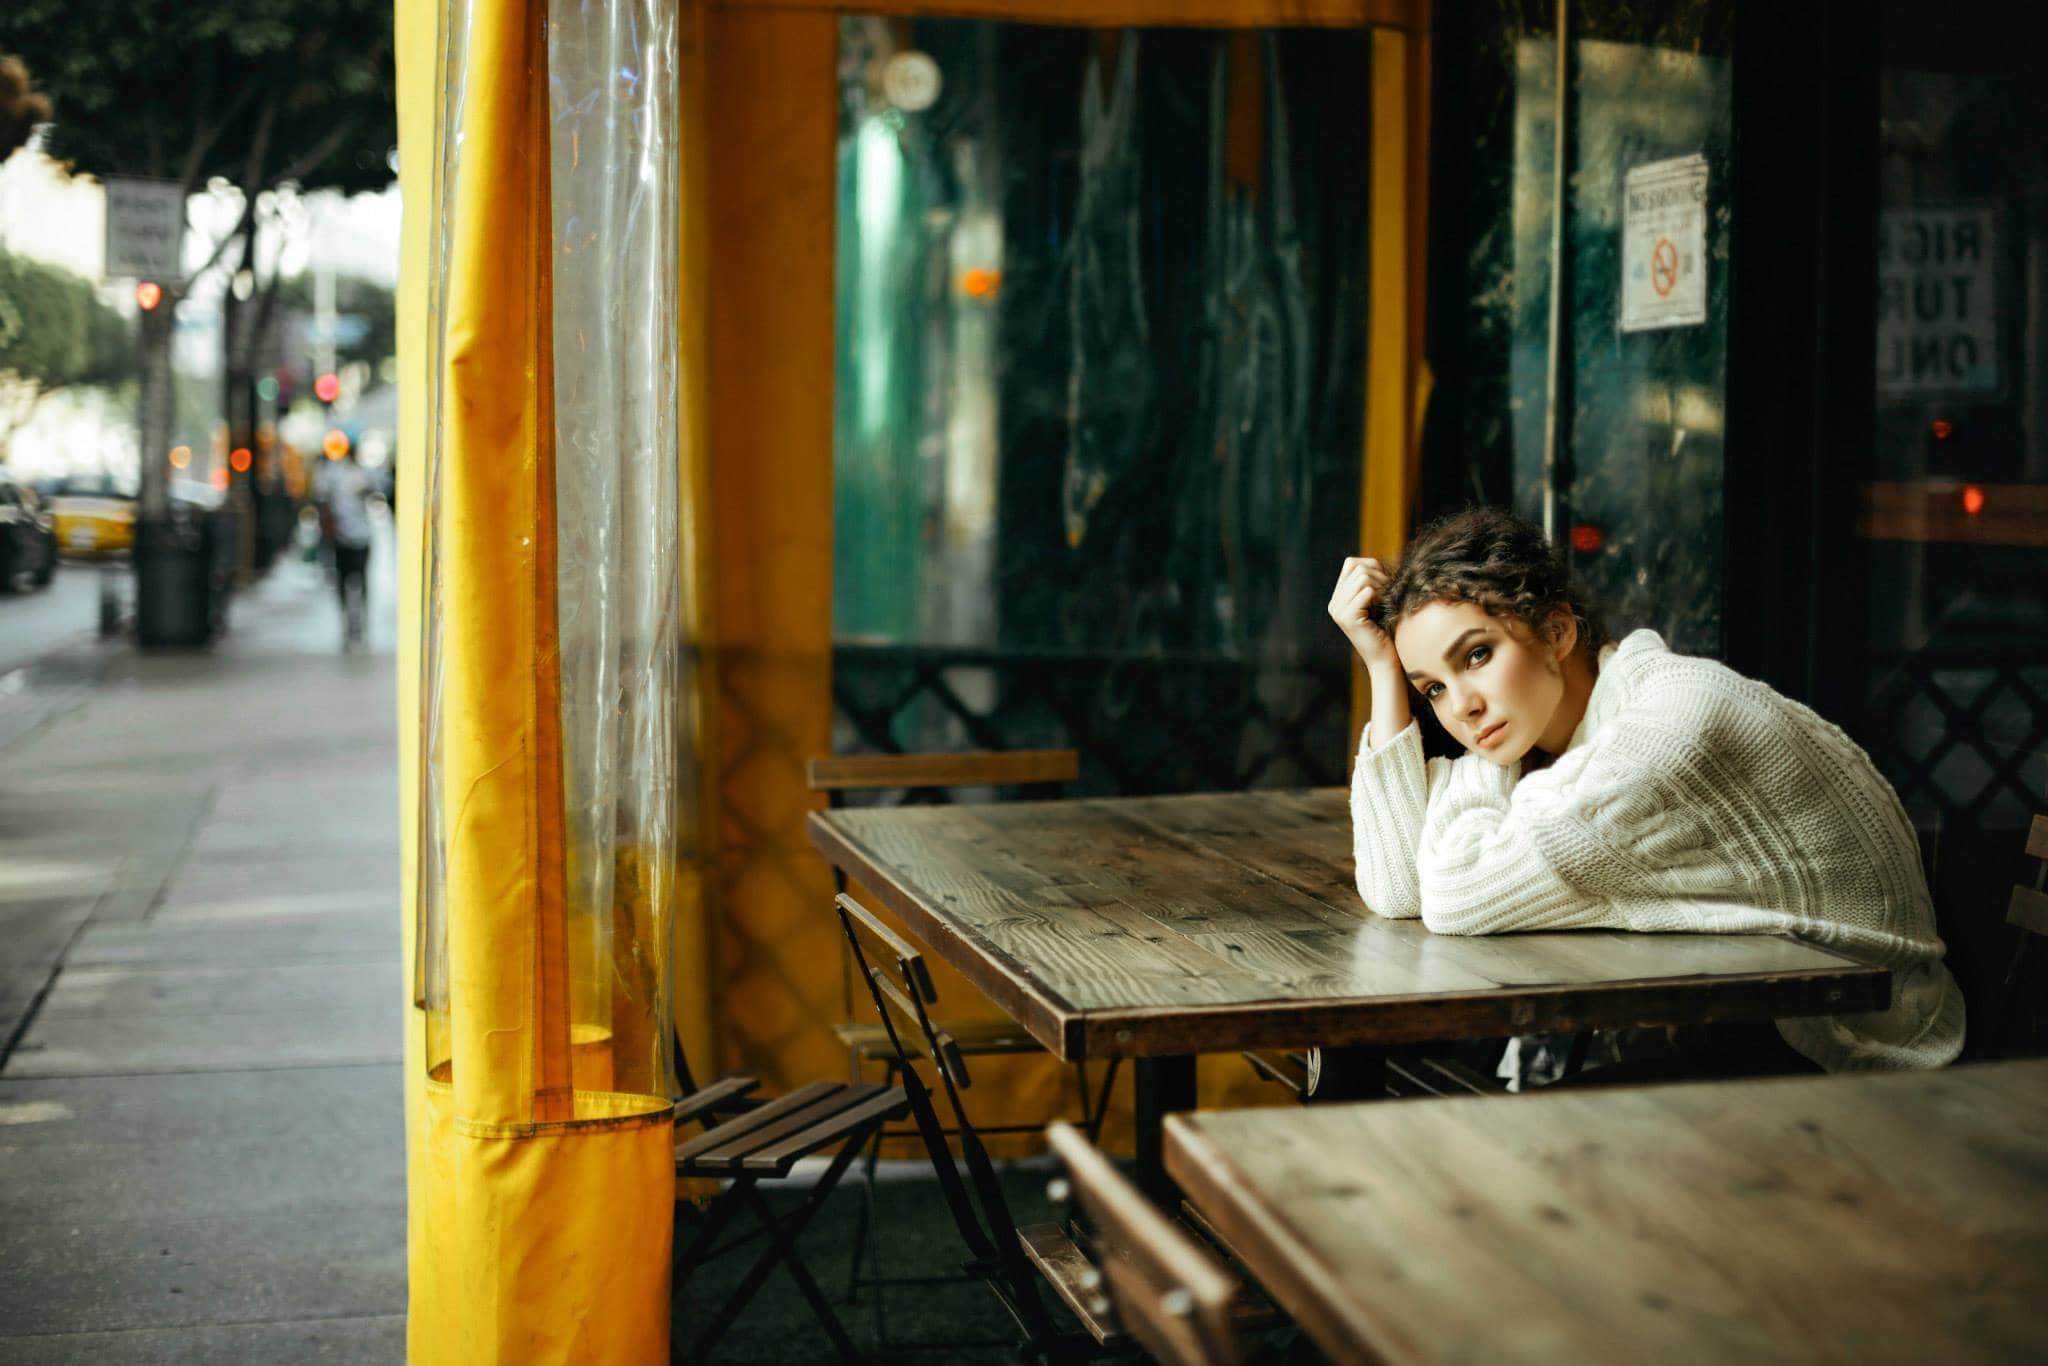 A Russian dream, story of olga and her dreams by the best creative photographer Arjun Kamath-2